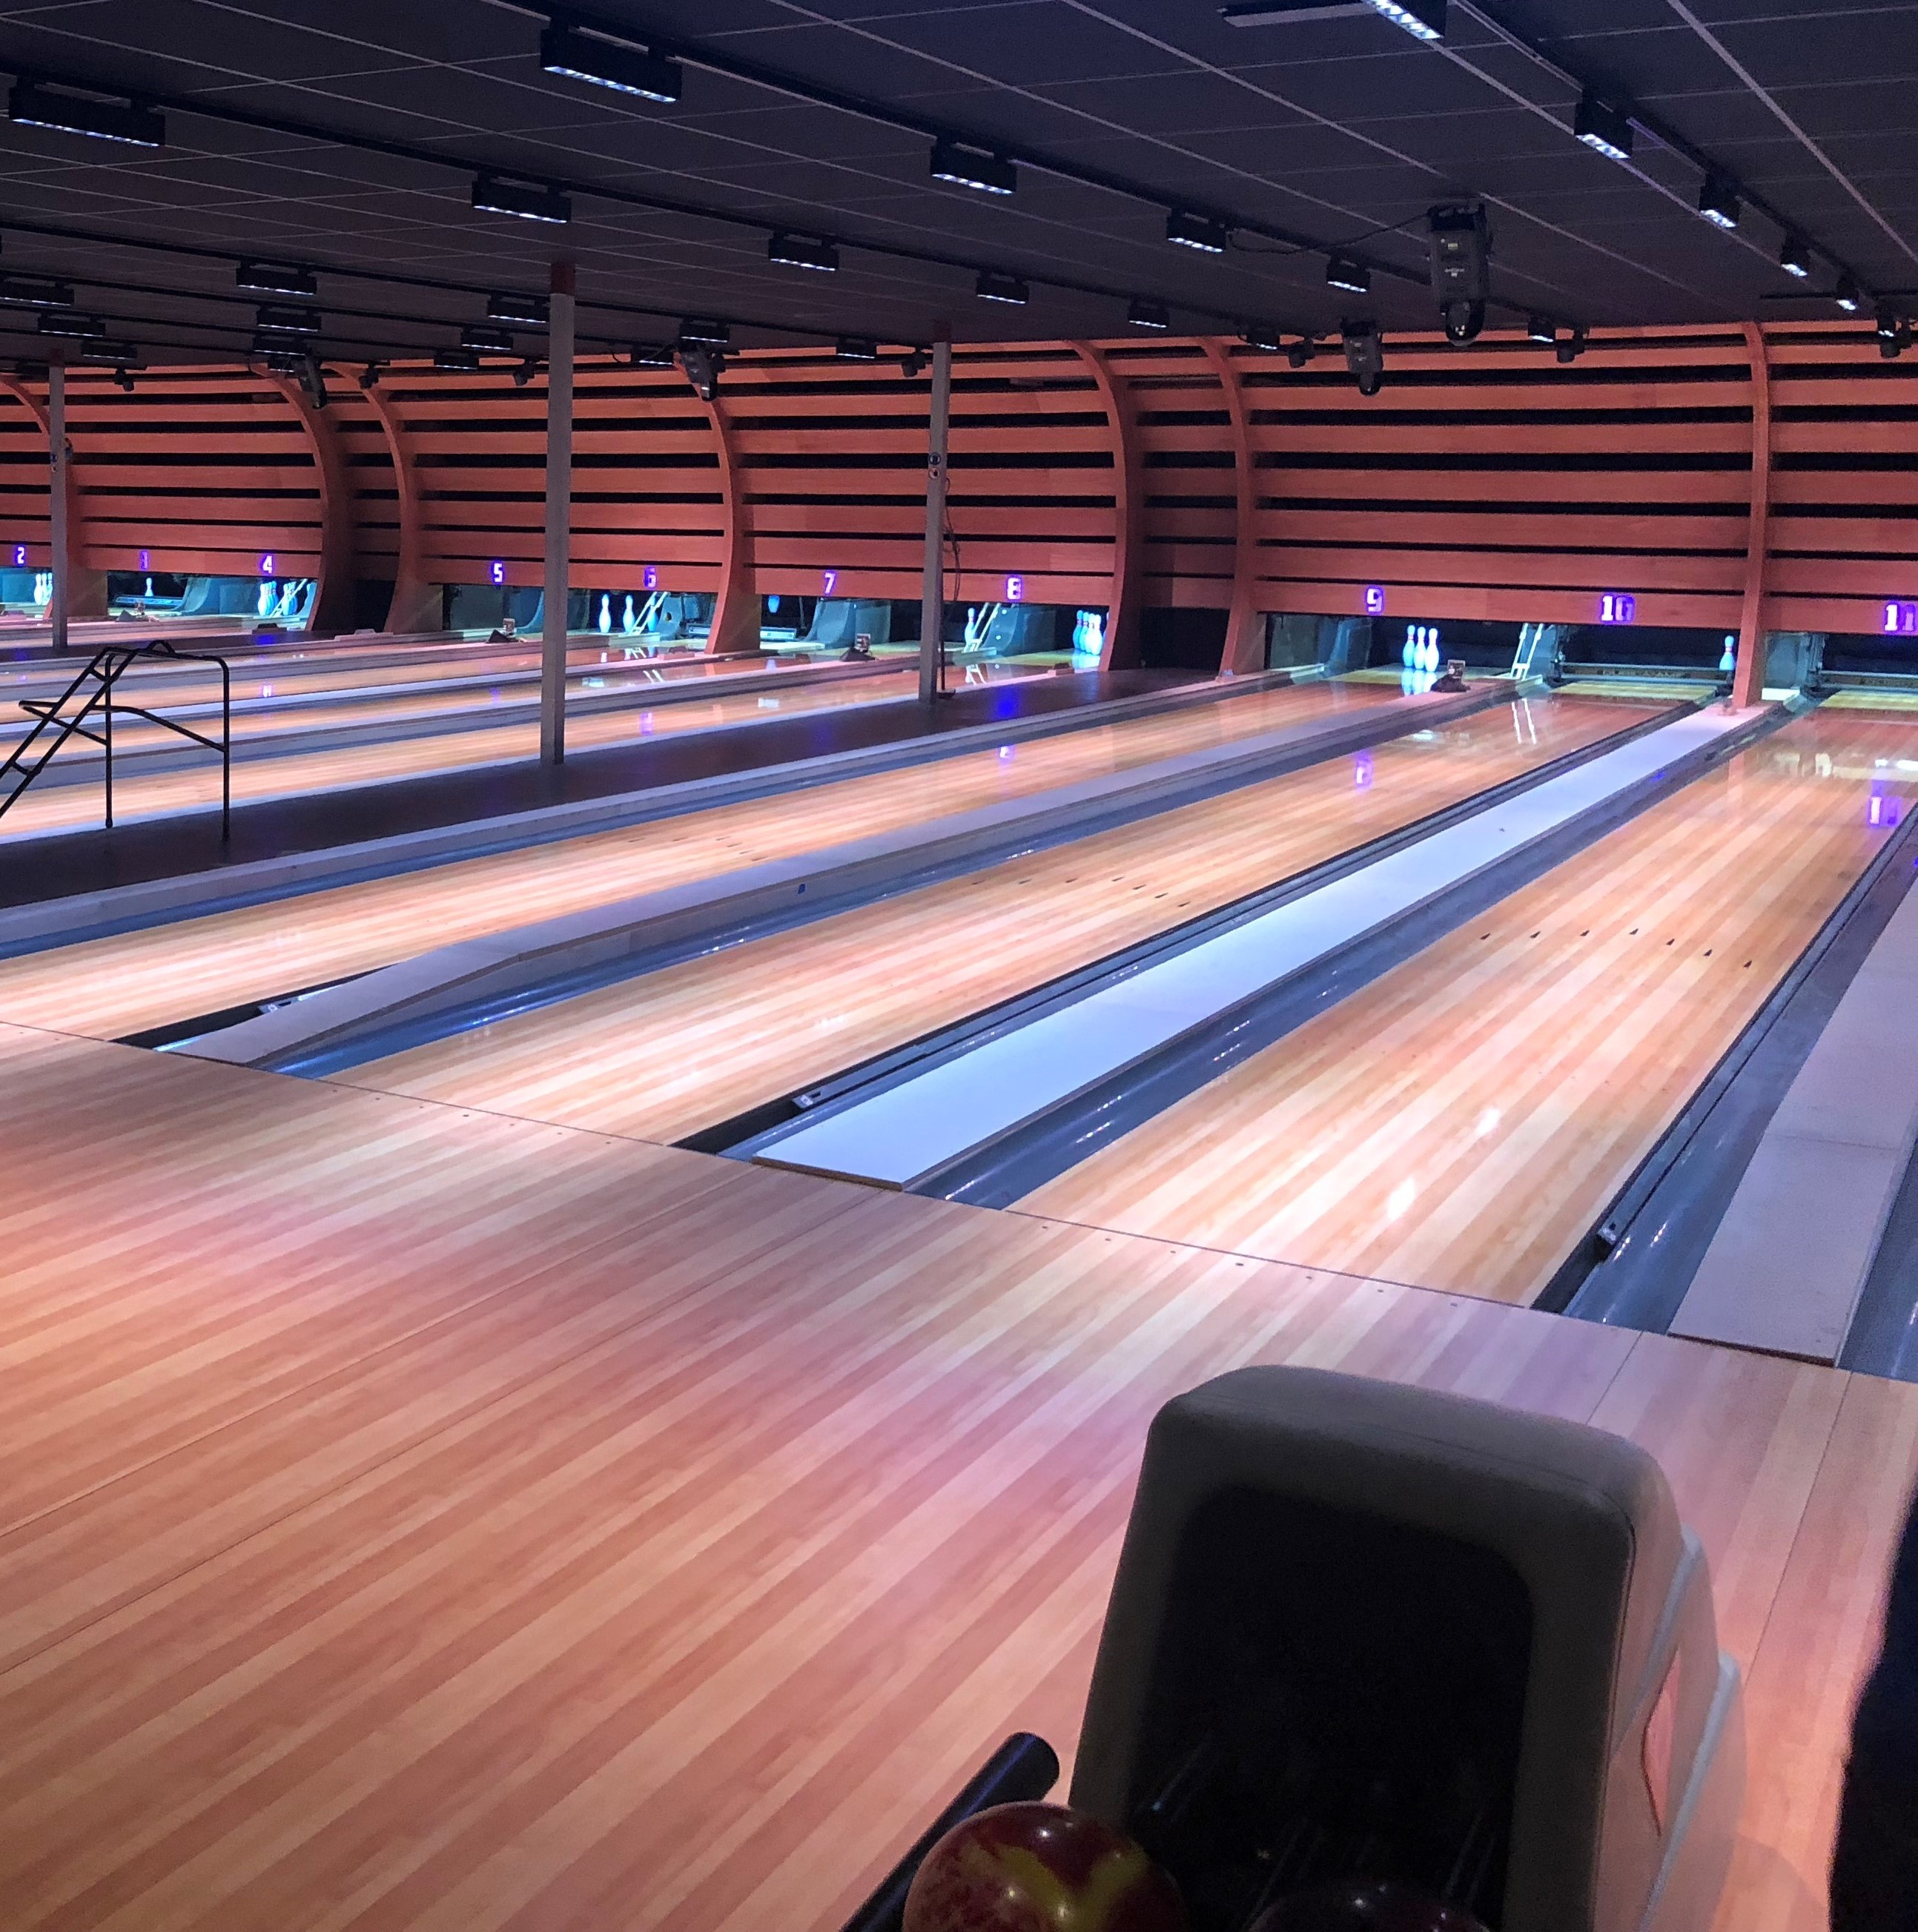 Olroudn Bowling Center 2018